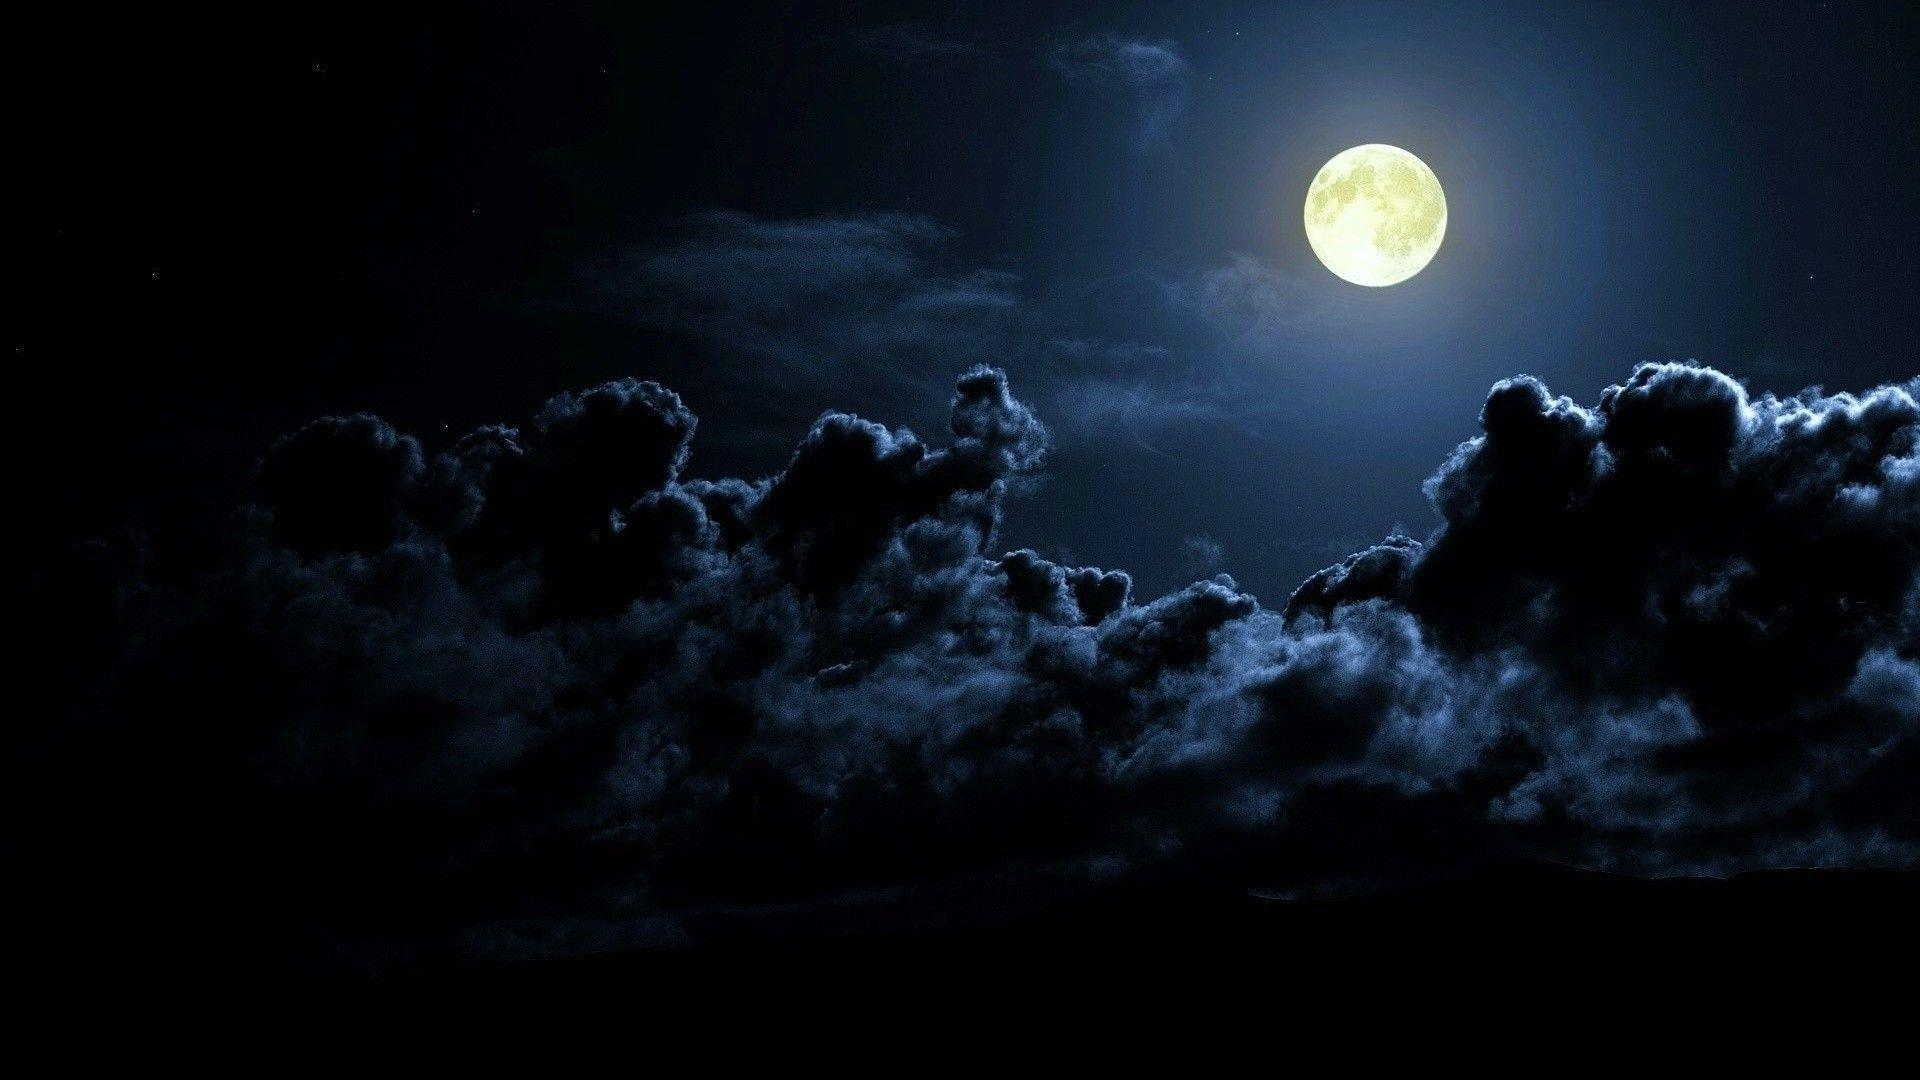 darkness clouds nature image